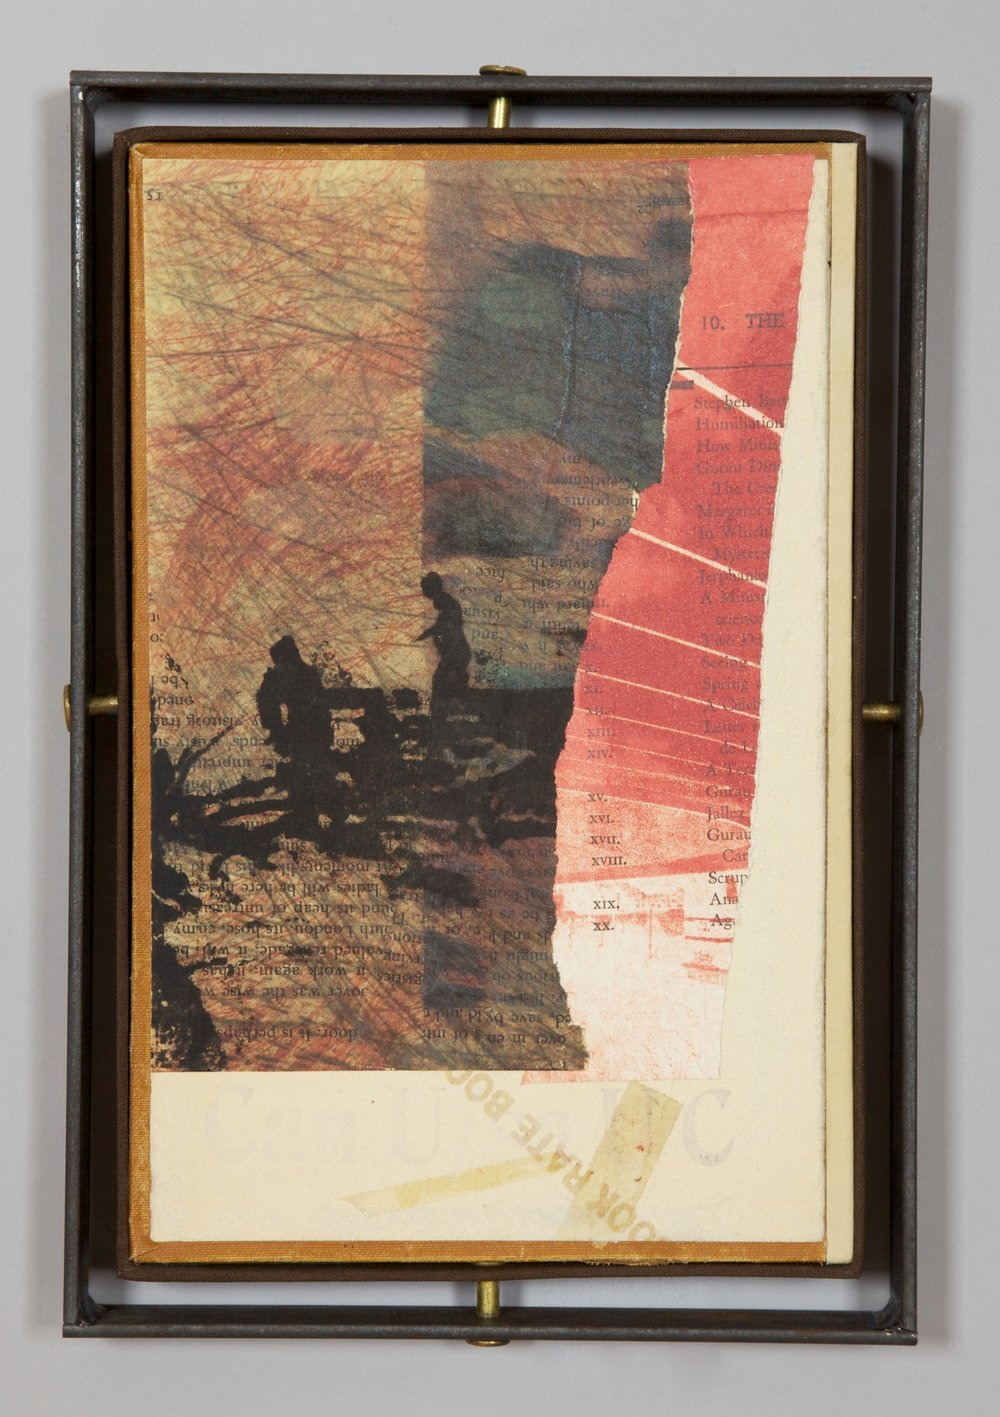 POWERS THAT BE - 2011.Five Mixed Media Constructions: bookcover, cloth & pages, digital &letterpress prints, graphite, scotchtape, Chicago screws & posts,rusty iron frames.Ea: 7 x 10.33 x 1 inches.